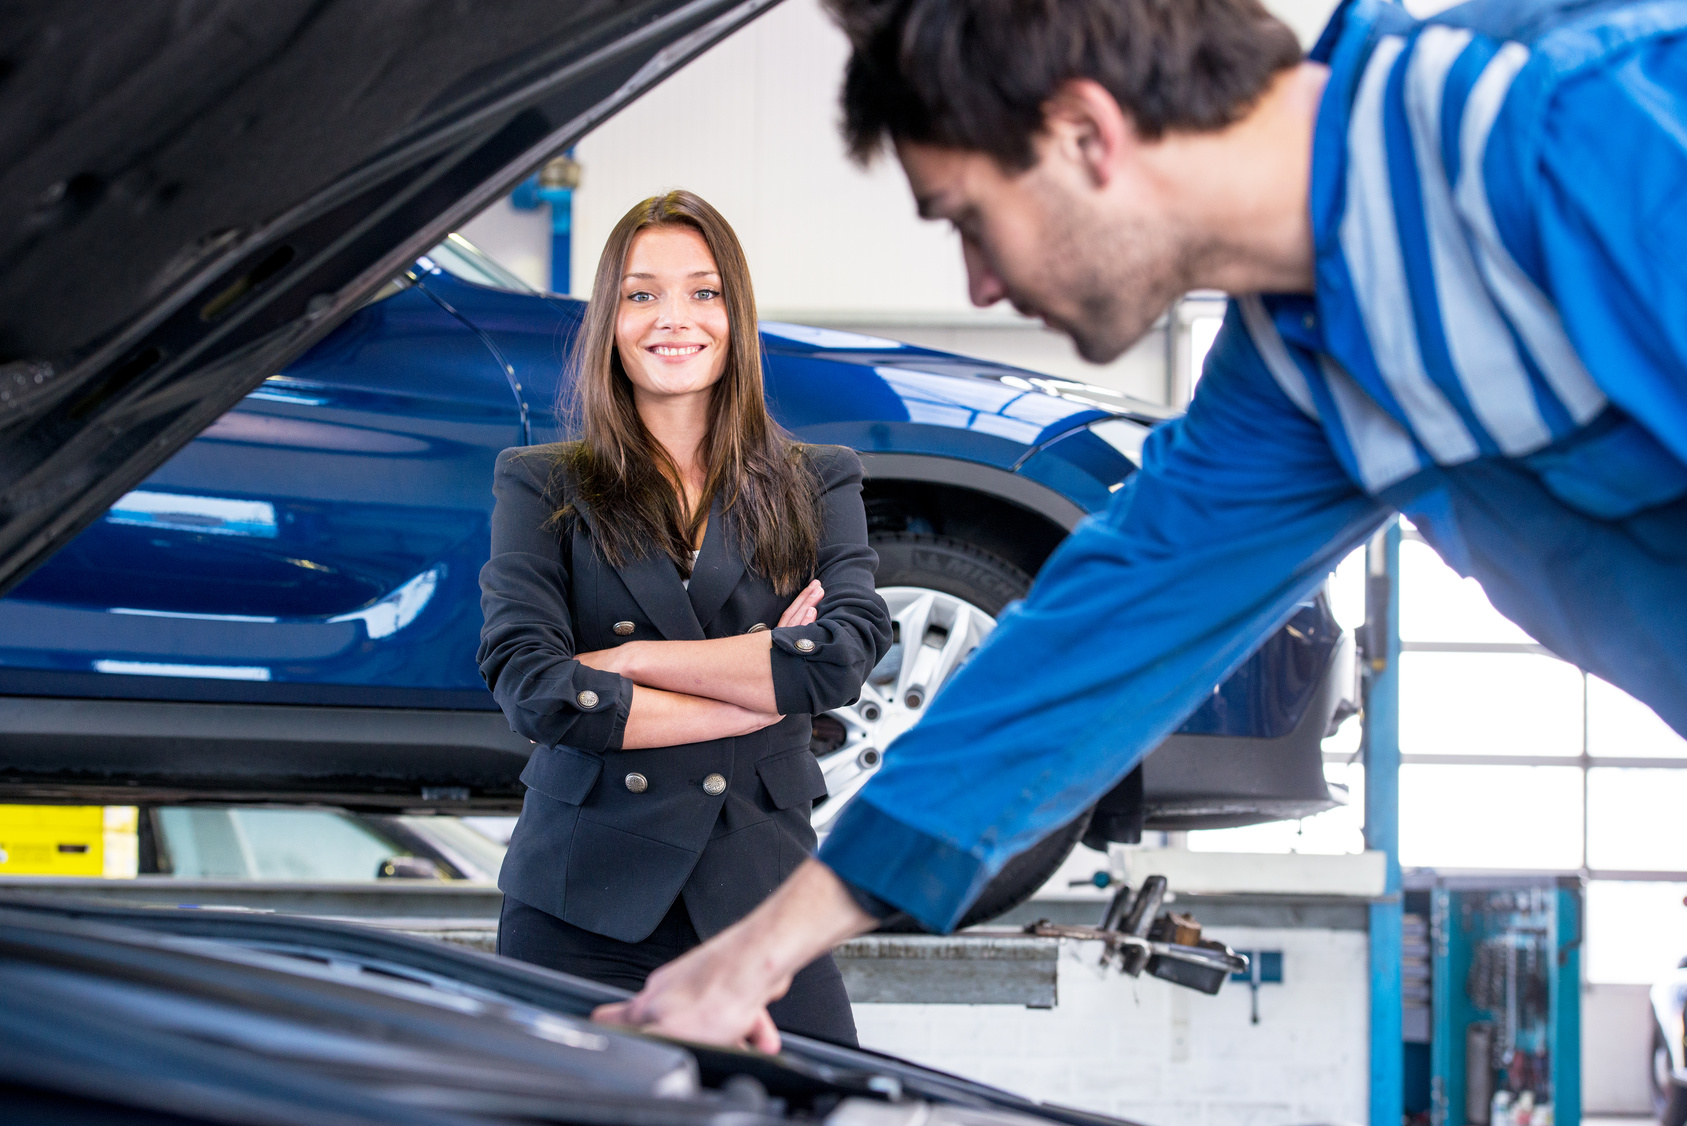 Miracle Answers Your Auto Repair Questions Miracle Body and Paint San Antonio Texas